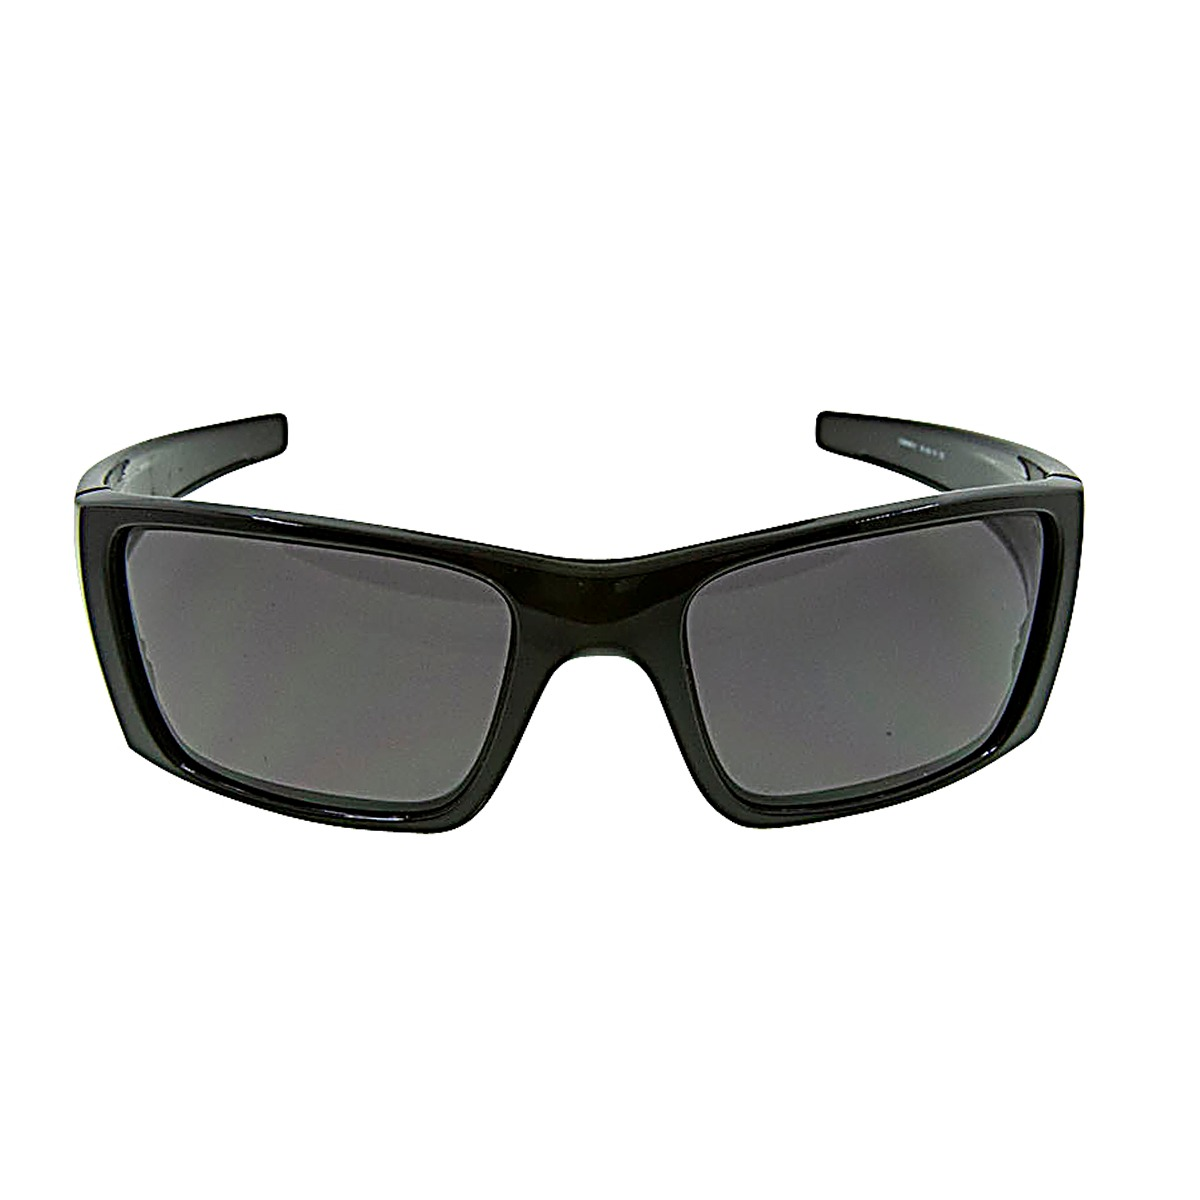 2ba0b4b5f6 Details about New Authentic Oakley Fuel Cell Sunglasses Polished Black with  Warm Grey Lenses